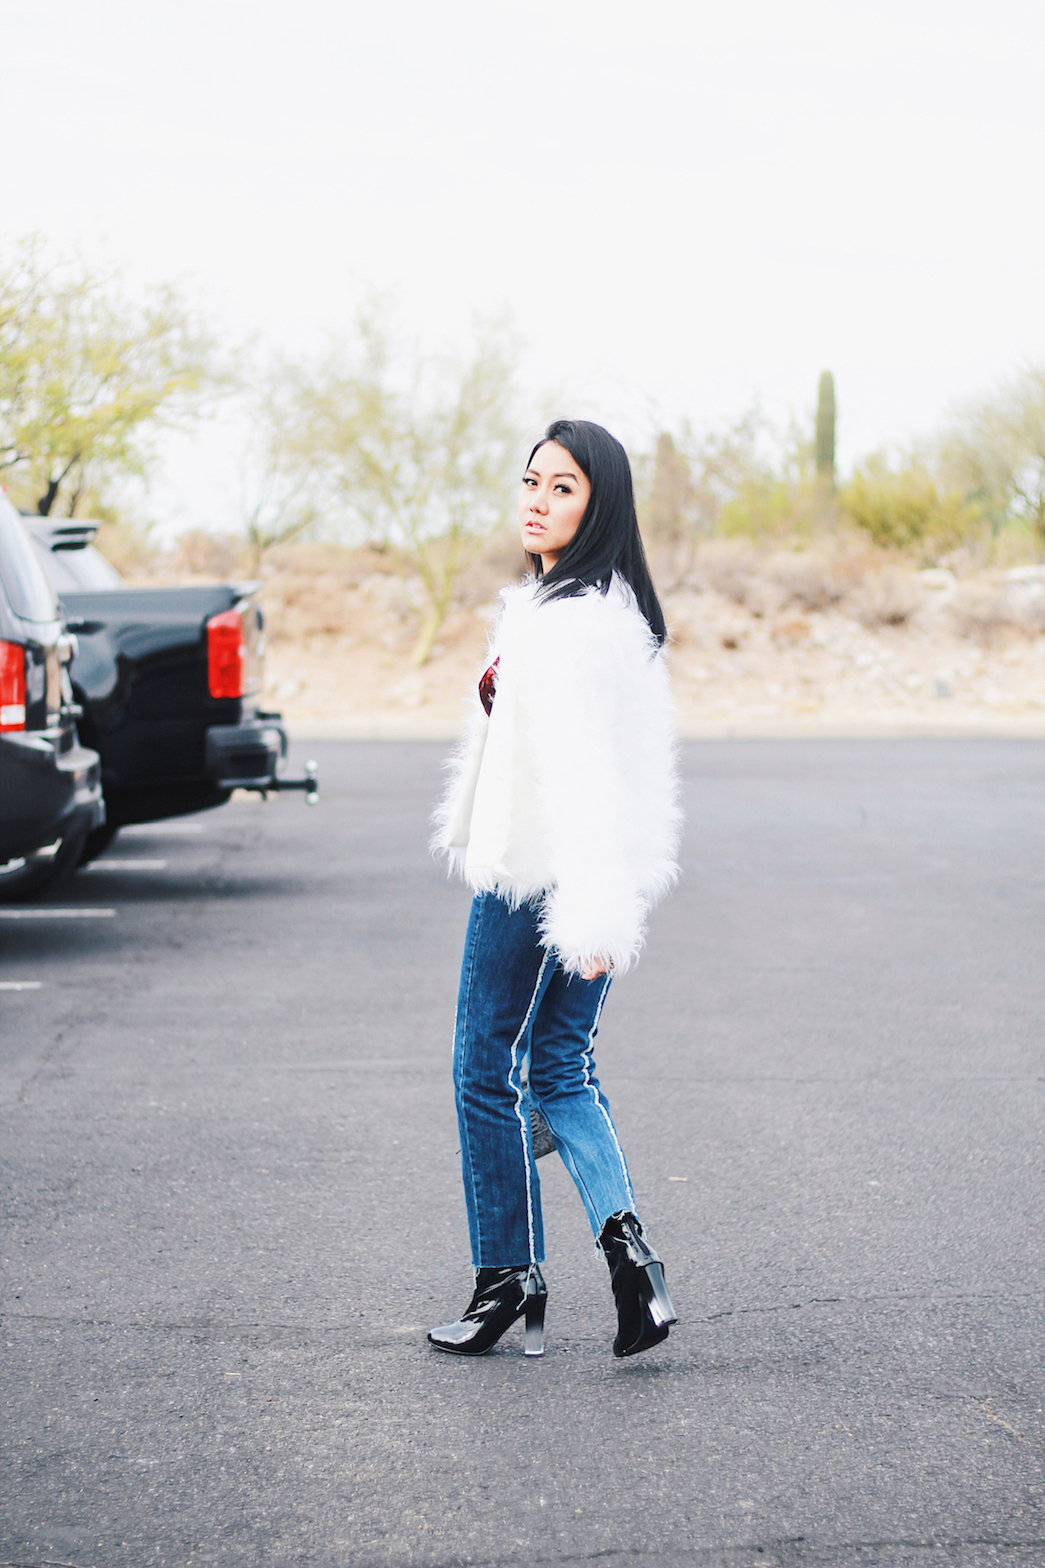 Holiday-Outfit-Ideas-Jeans-Faux-Fur-Jacket-Patent-Boots